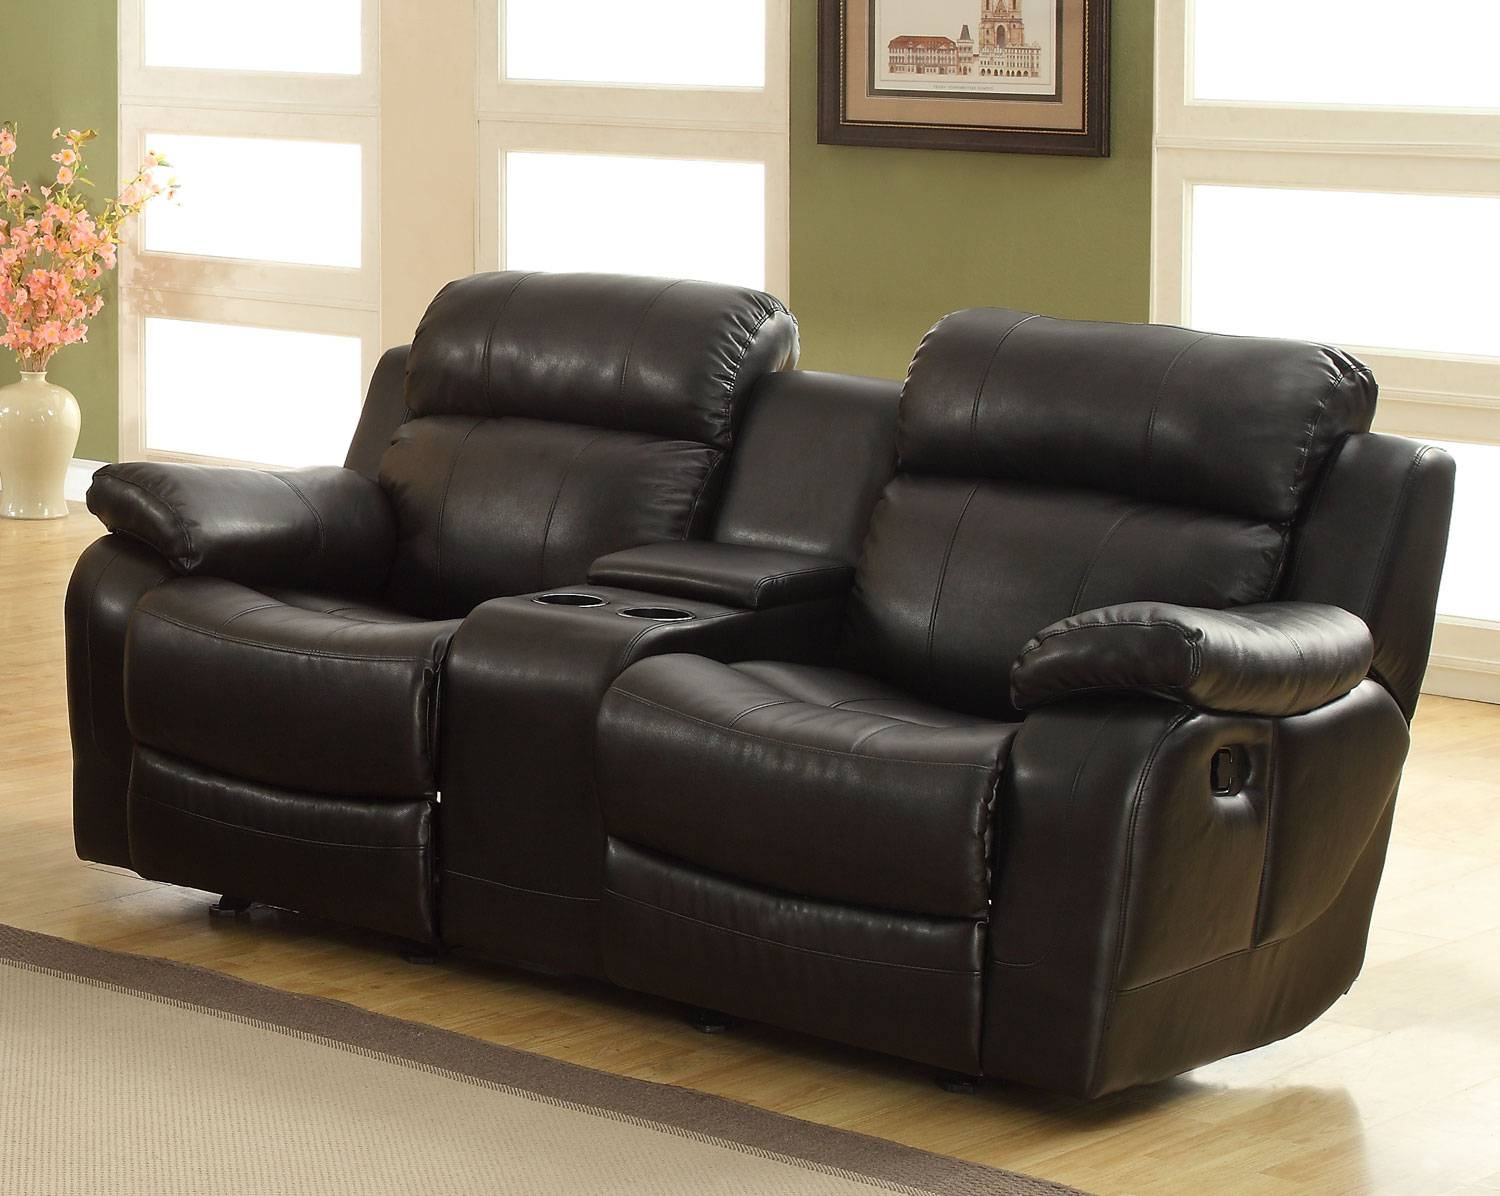 Furniture: Enjoy Your Time With Cozy Rocking Recliner Loveseat For 2 Seater Recliner Leather Sofas (View 2 of 30)